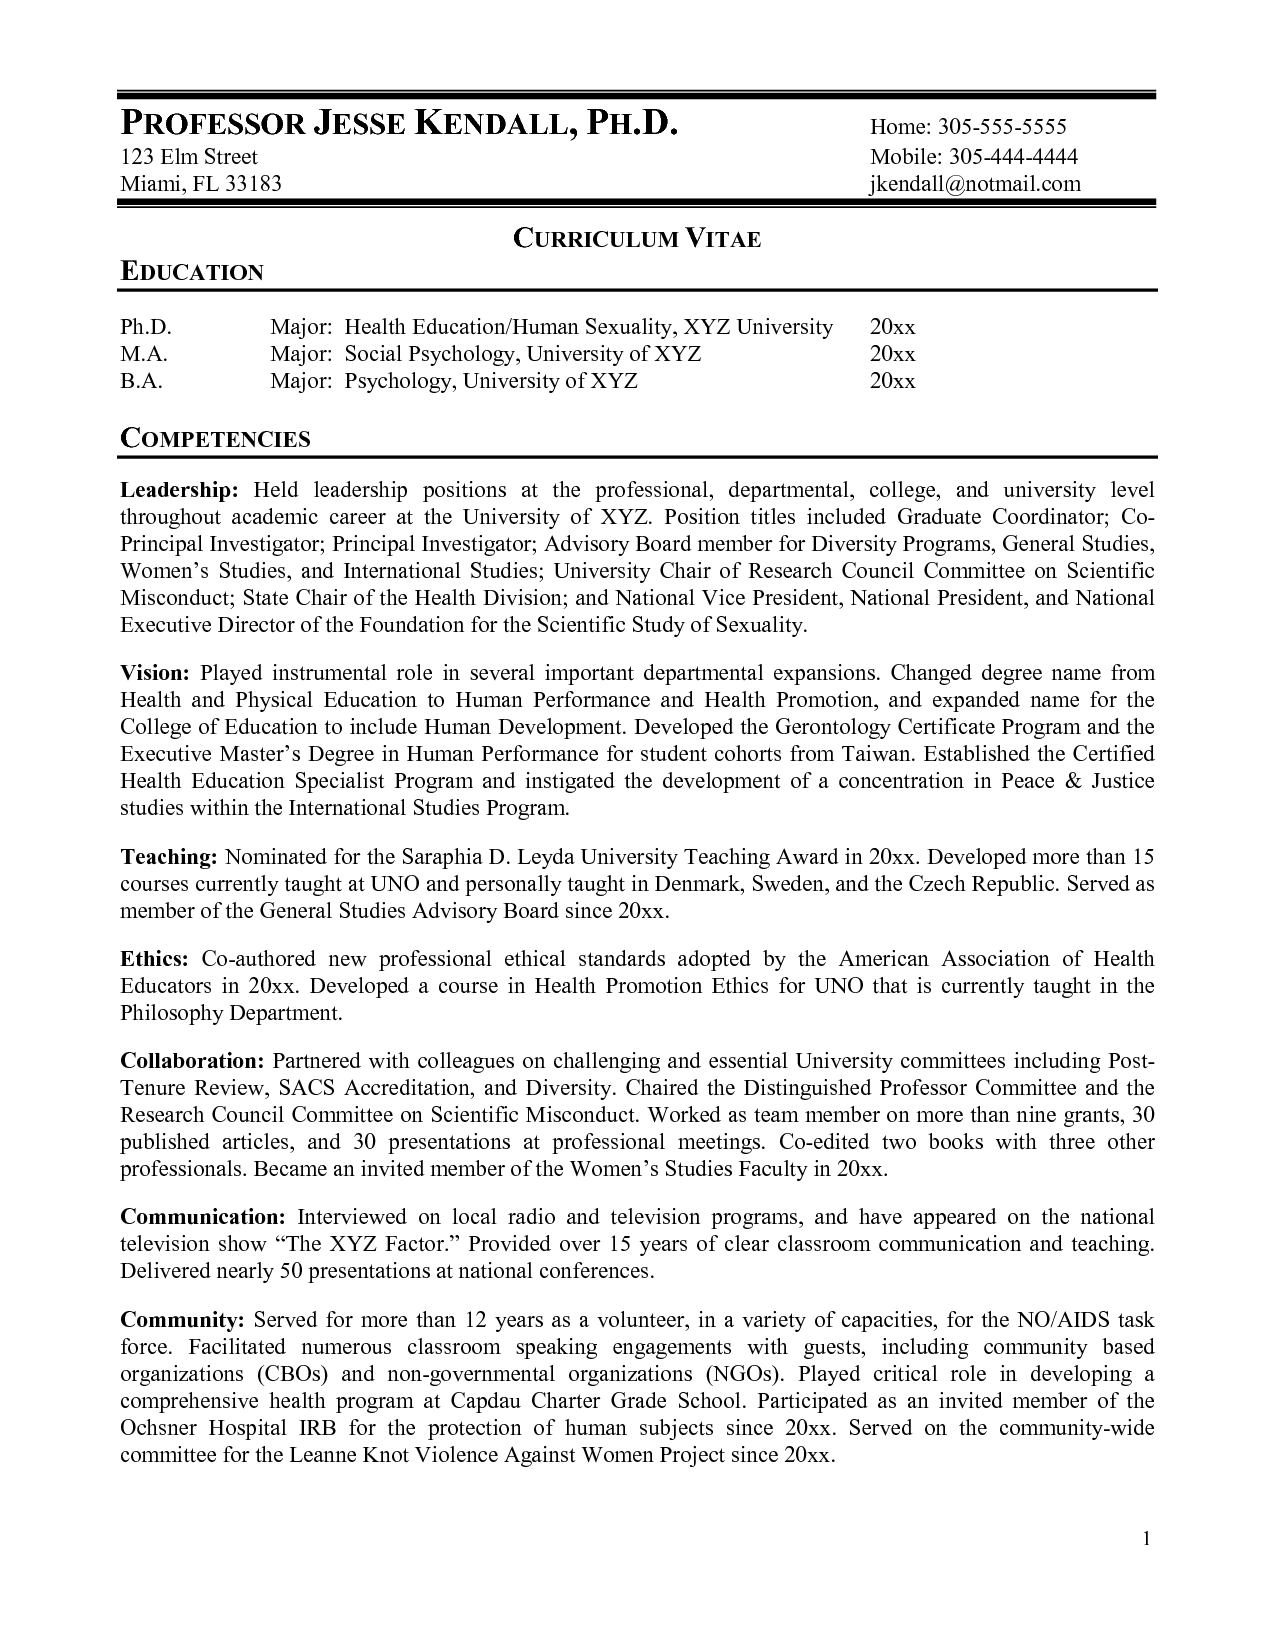 curriculum vitae college professor | Professor Resume Example ...